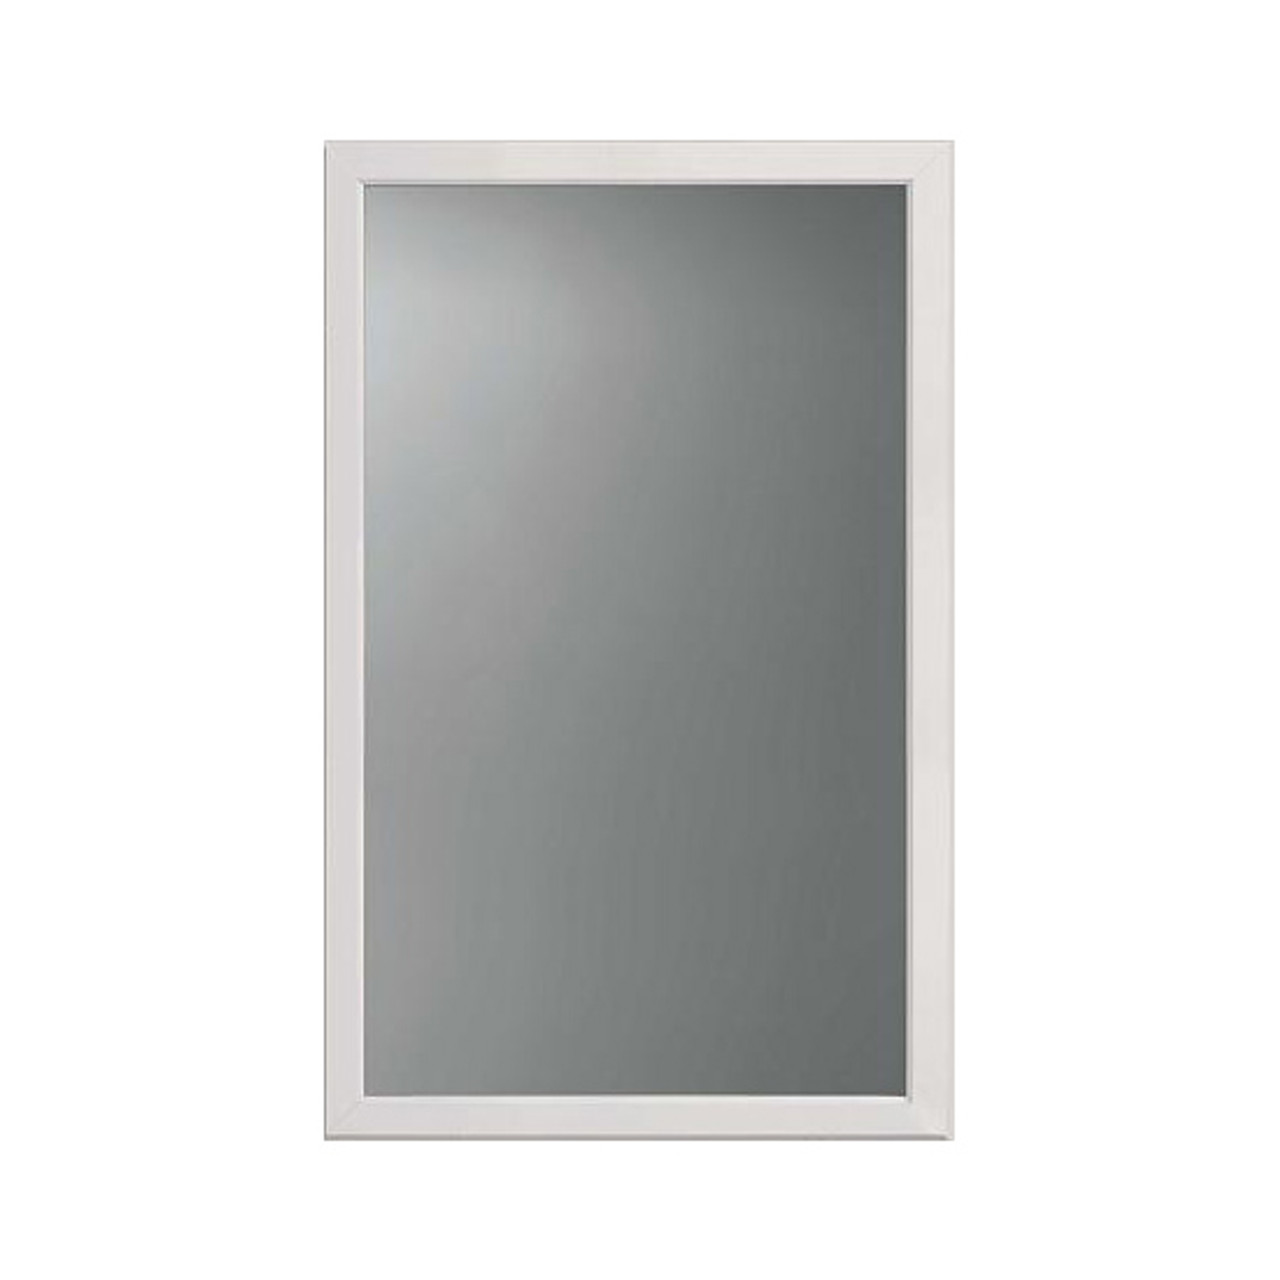 23x37 Clear Fixed Exterior Door Insert | Low-E Tempered Glass | 9036